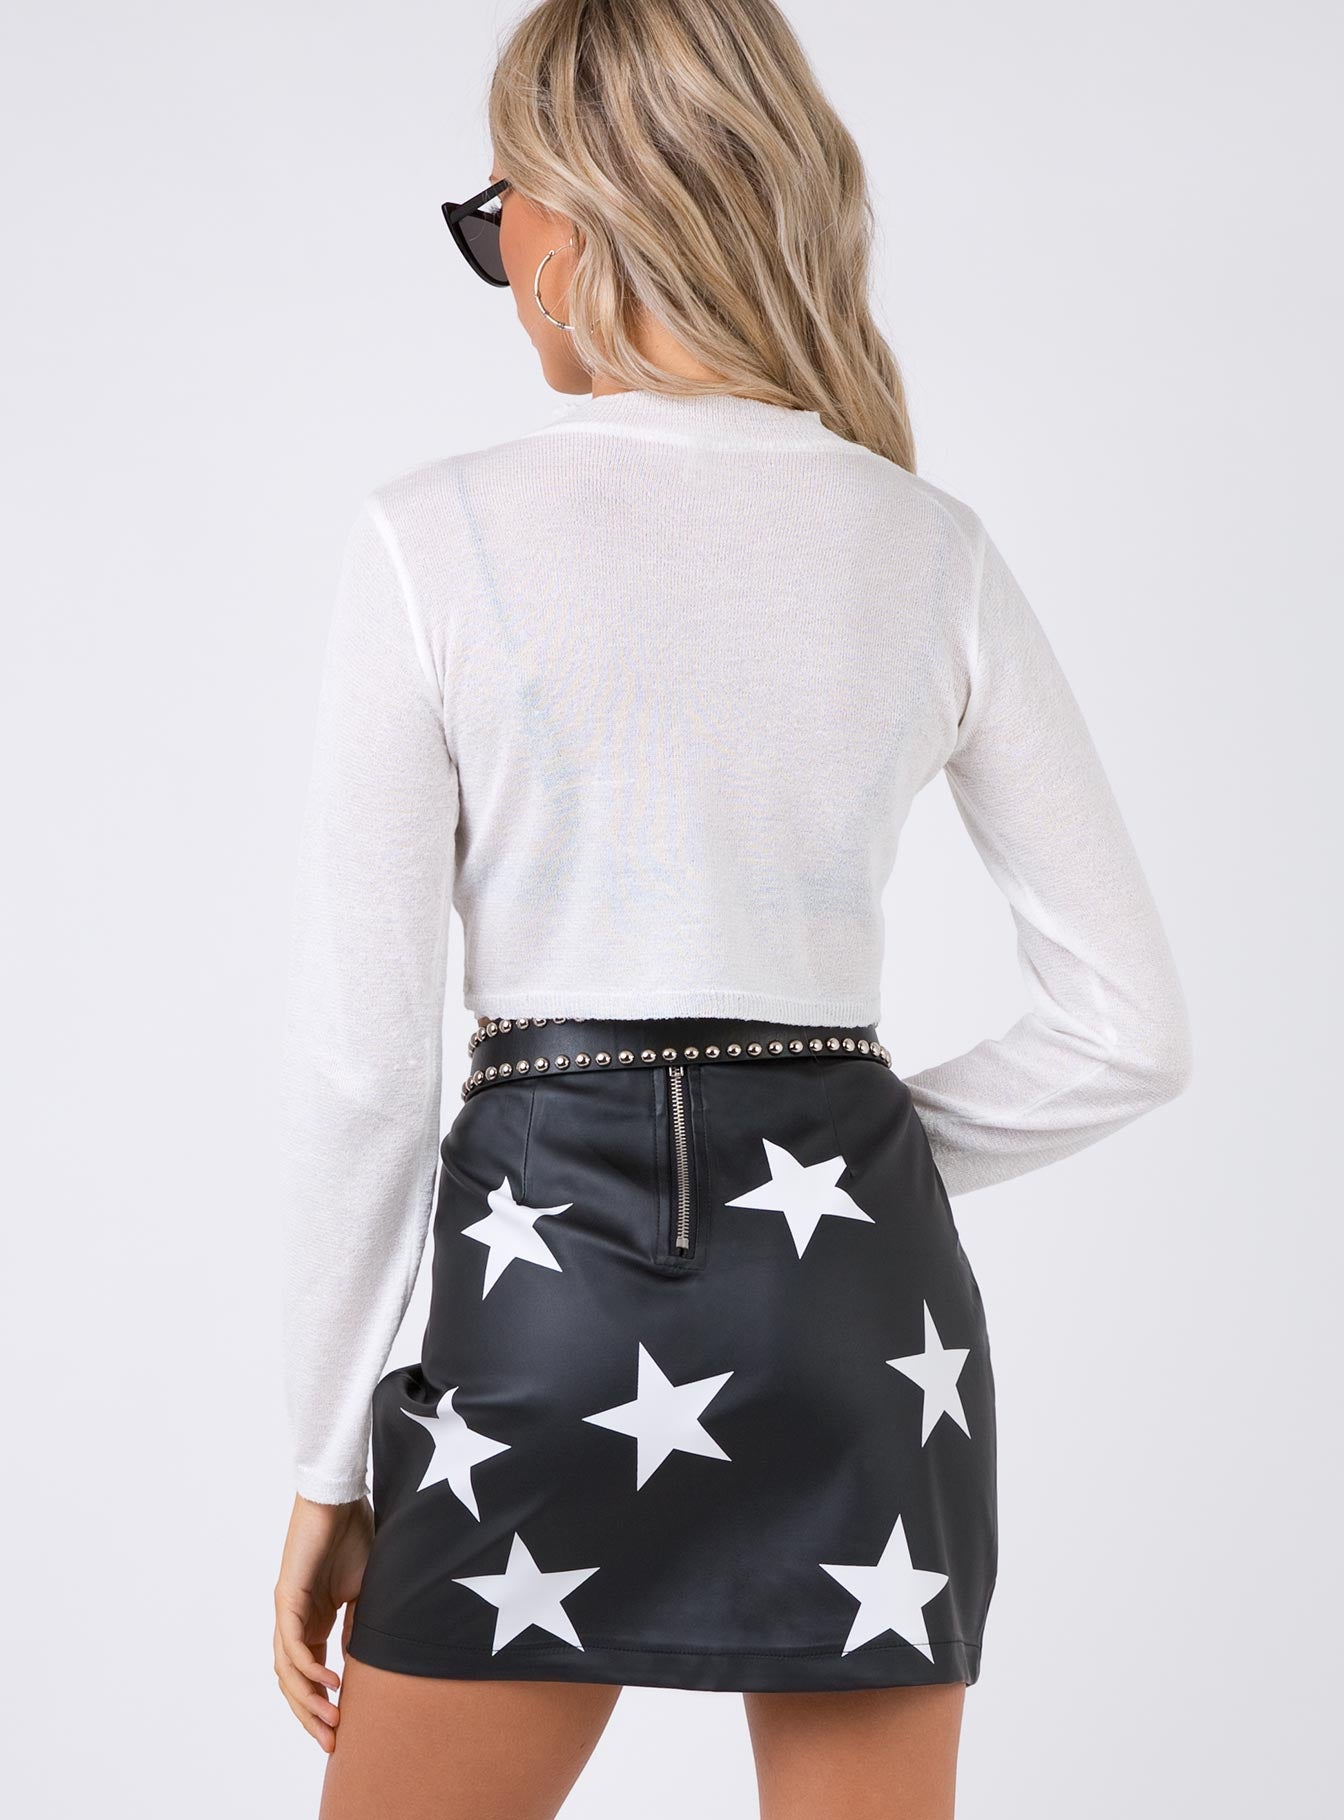 Starboy Mini Skirt Black